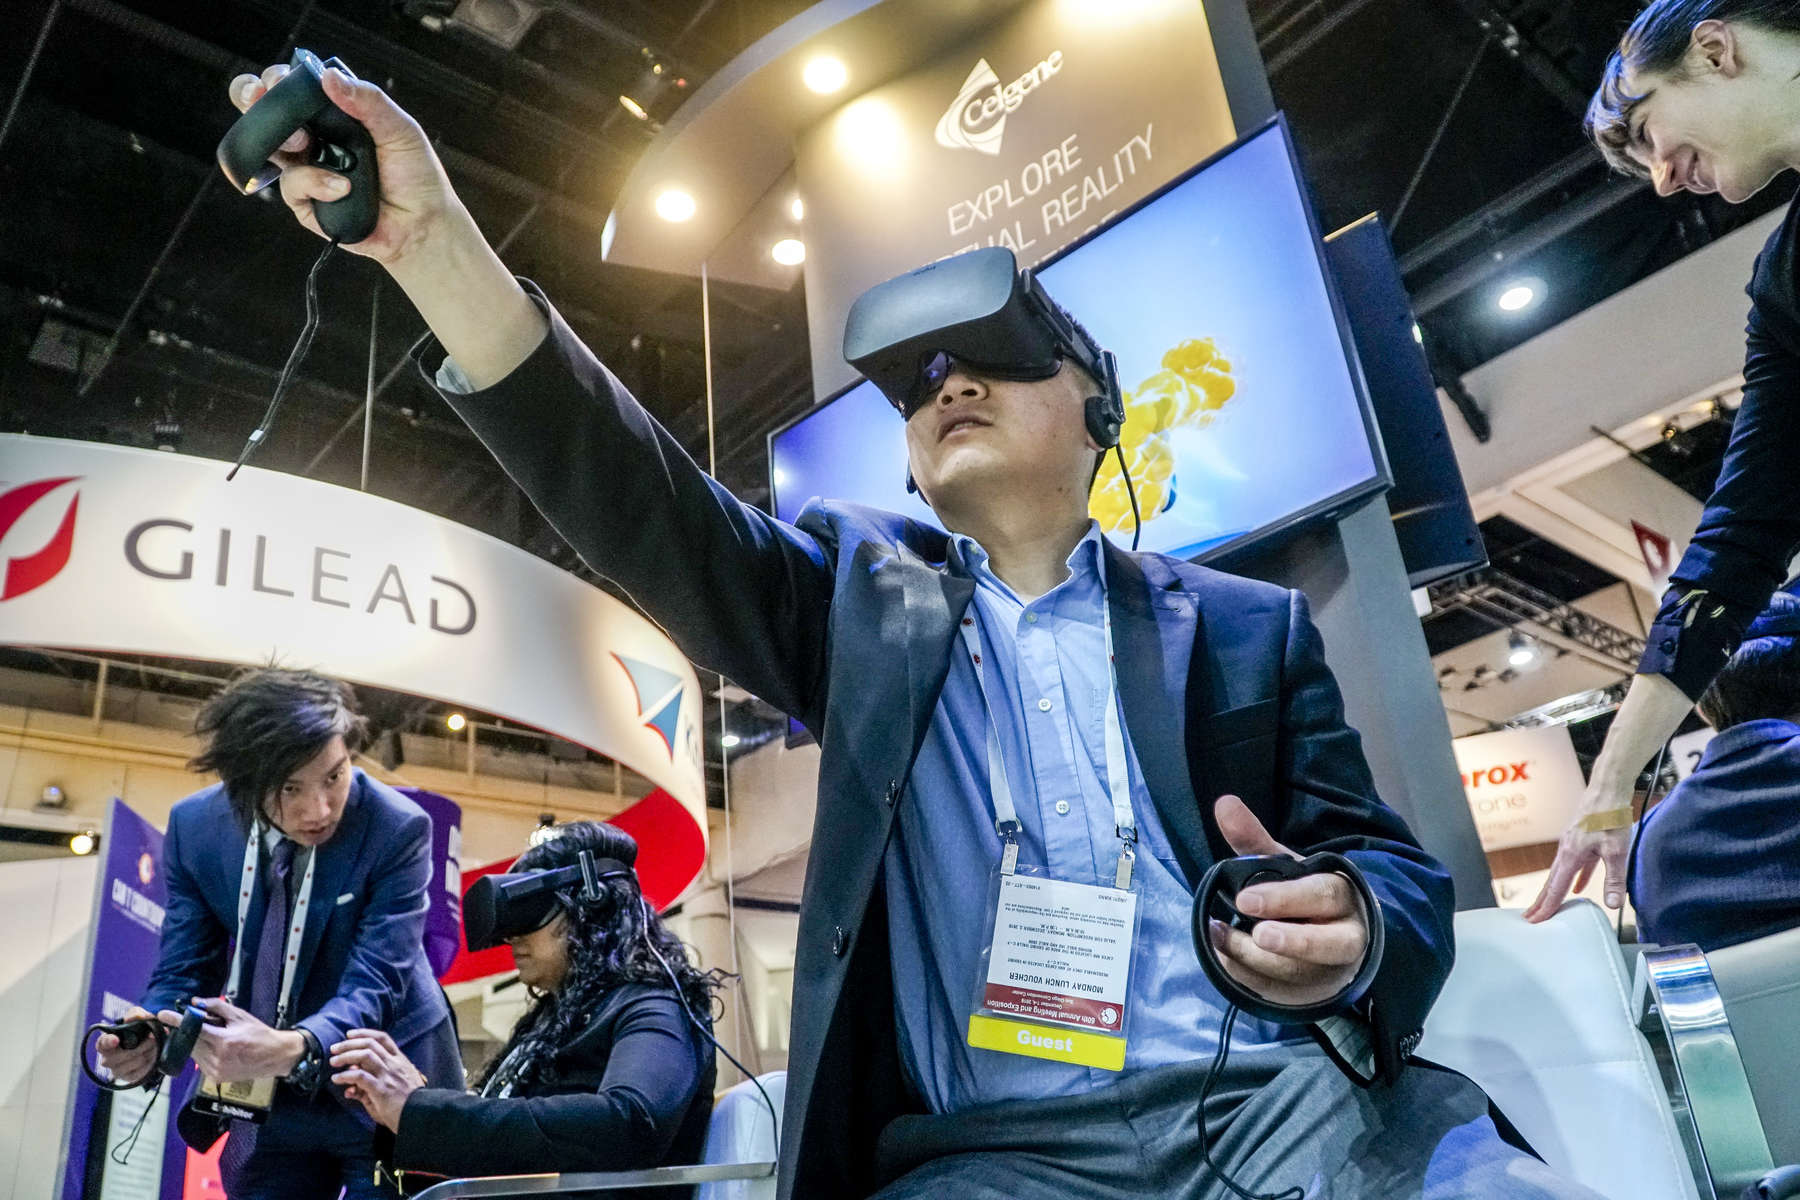 Jingyi Xiang, PhD, explores a virtual reality world in the exhibit hall.